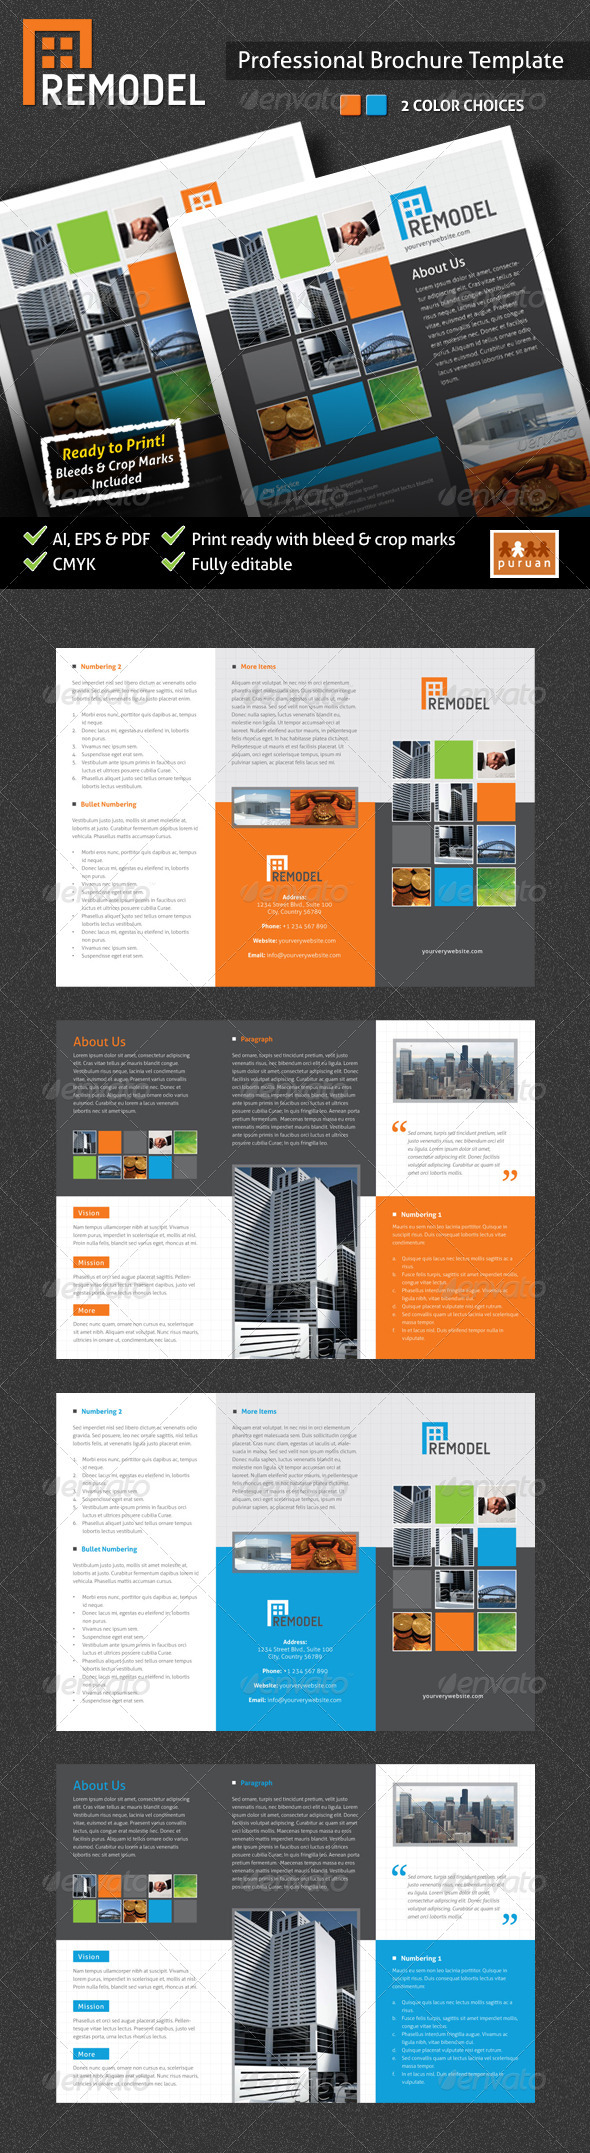 Remodel Brochure Template - Corporate Brochures